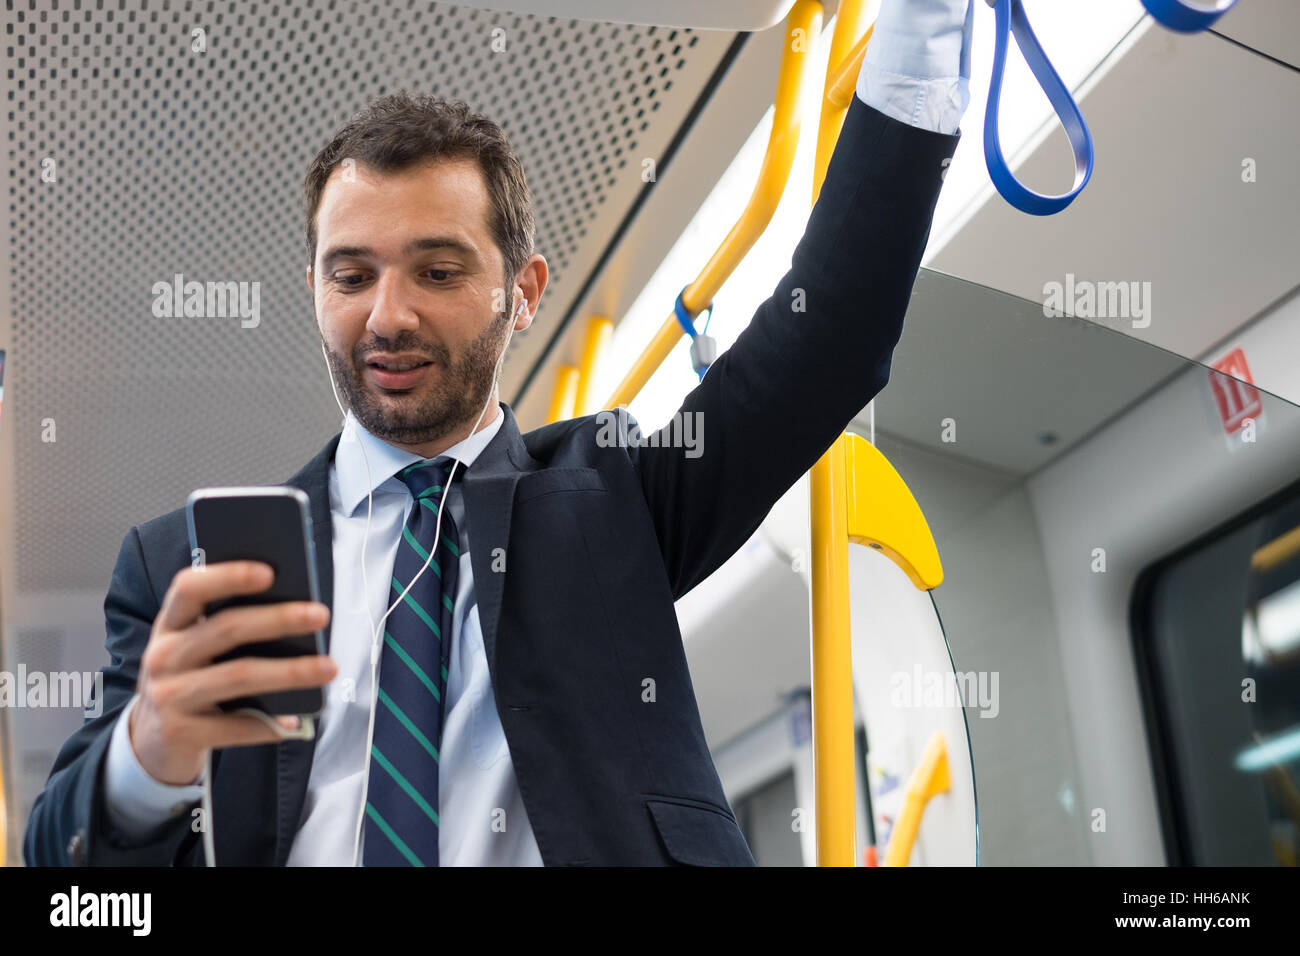 Businessman commuter traveling on the metro underground - Stock Image